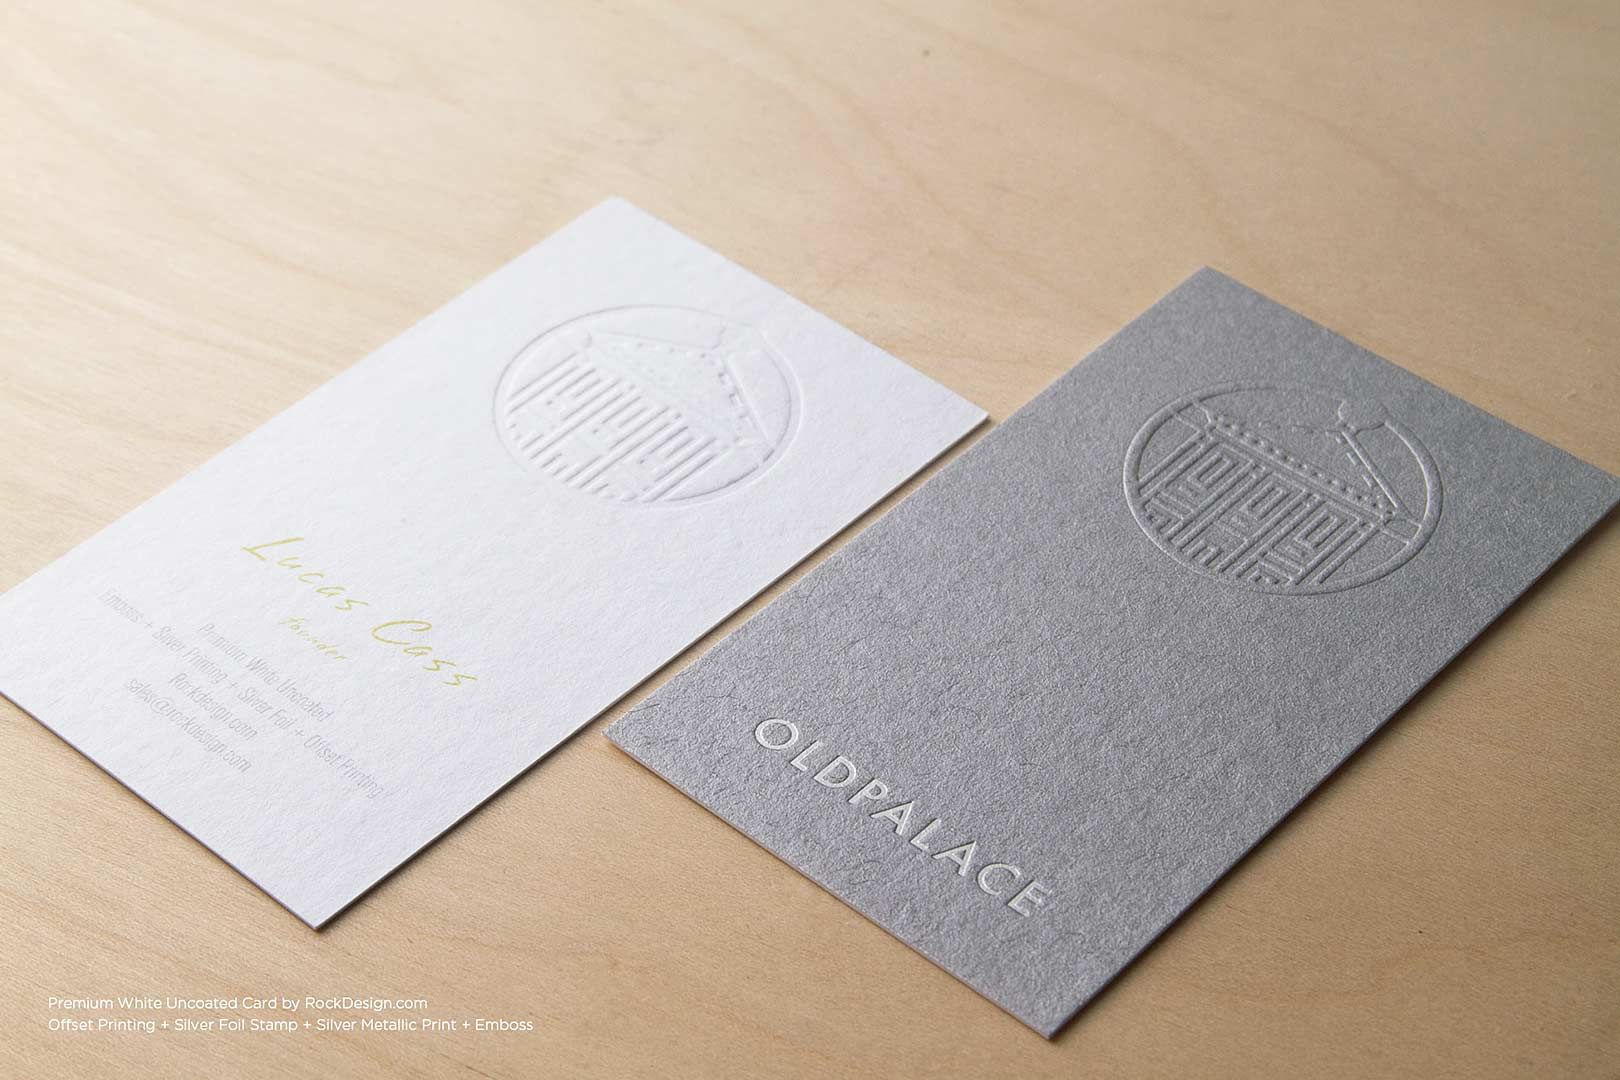 Premium uncoated business cards rockdesign luxury business card premium uncoated business cards rockdesign luxury business card printing this beautiful premium cardstock is embedded reheart Choice Image